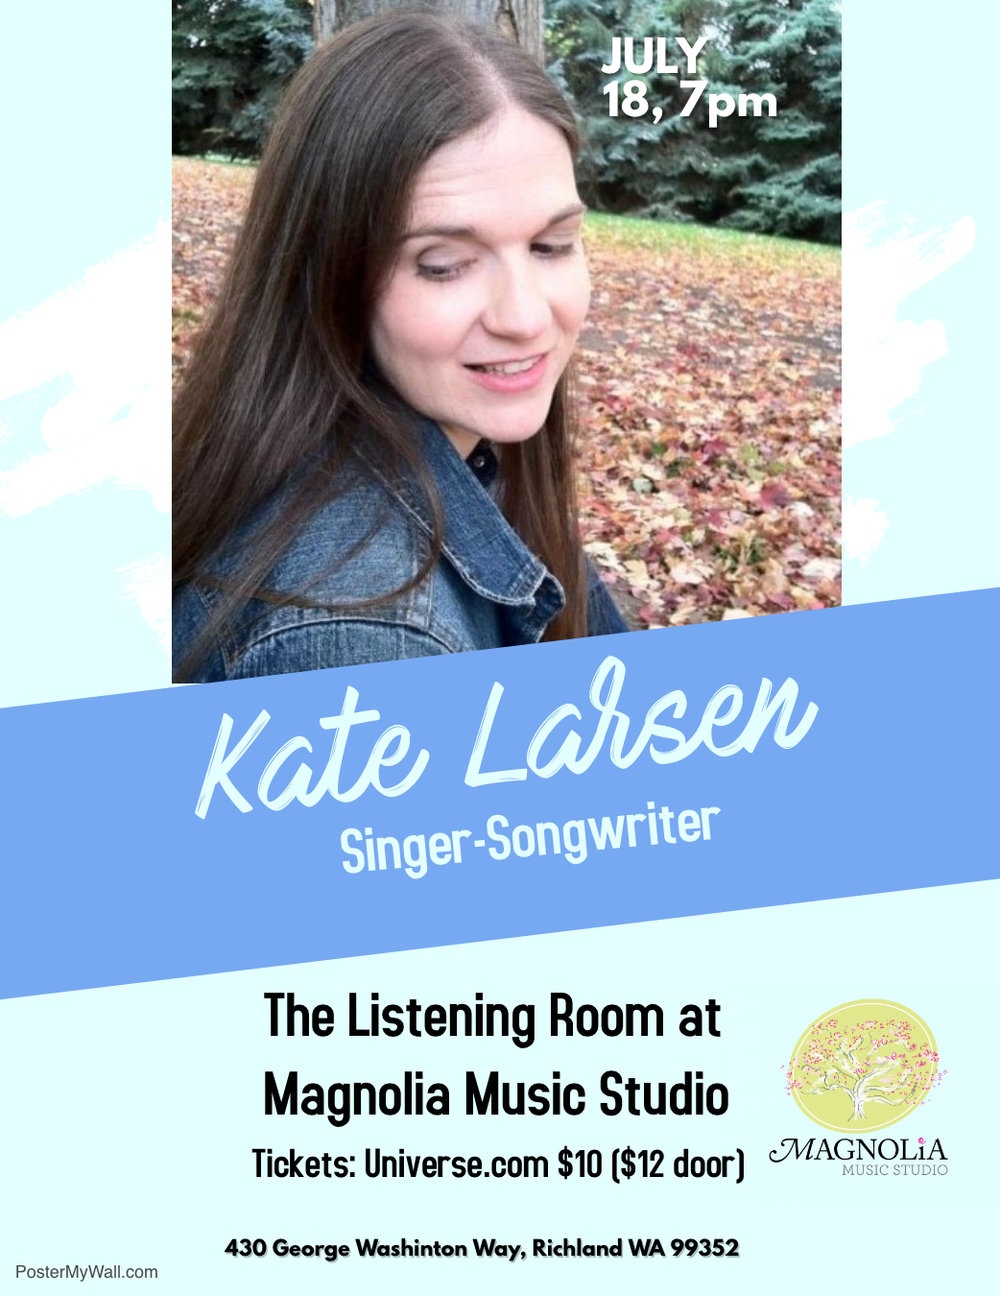 Singer-Songwriter Kate Larsen in concert, Wednesday July 18, 7pm.  Tickets